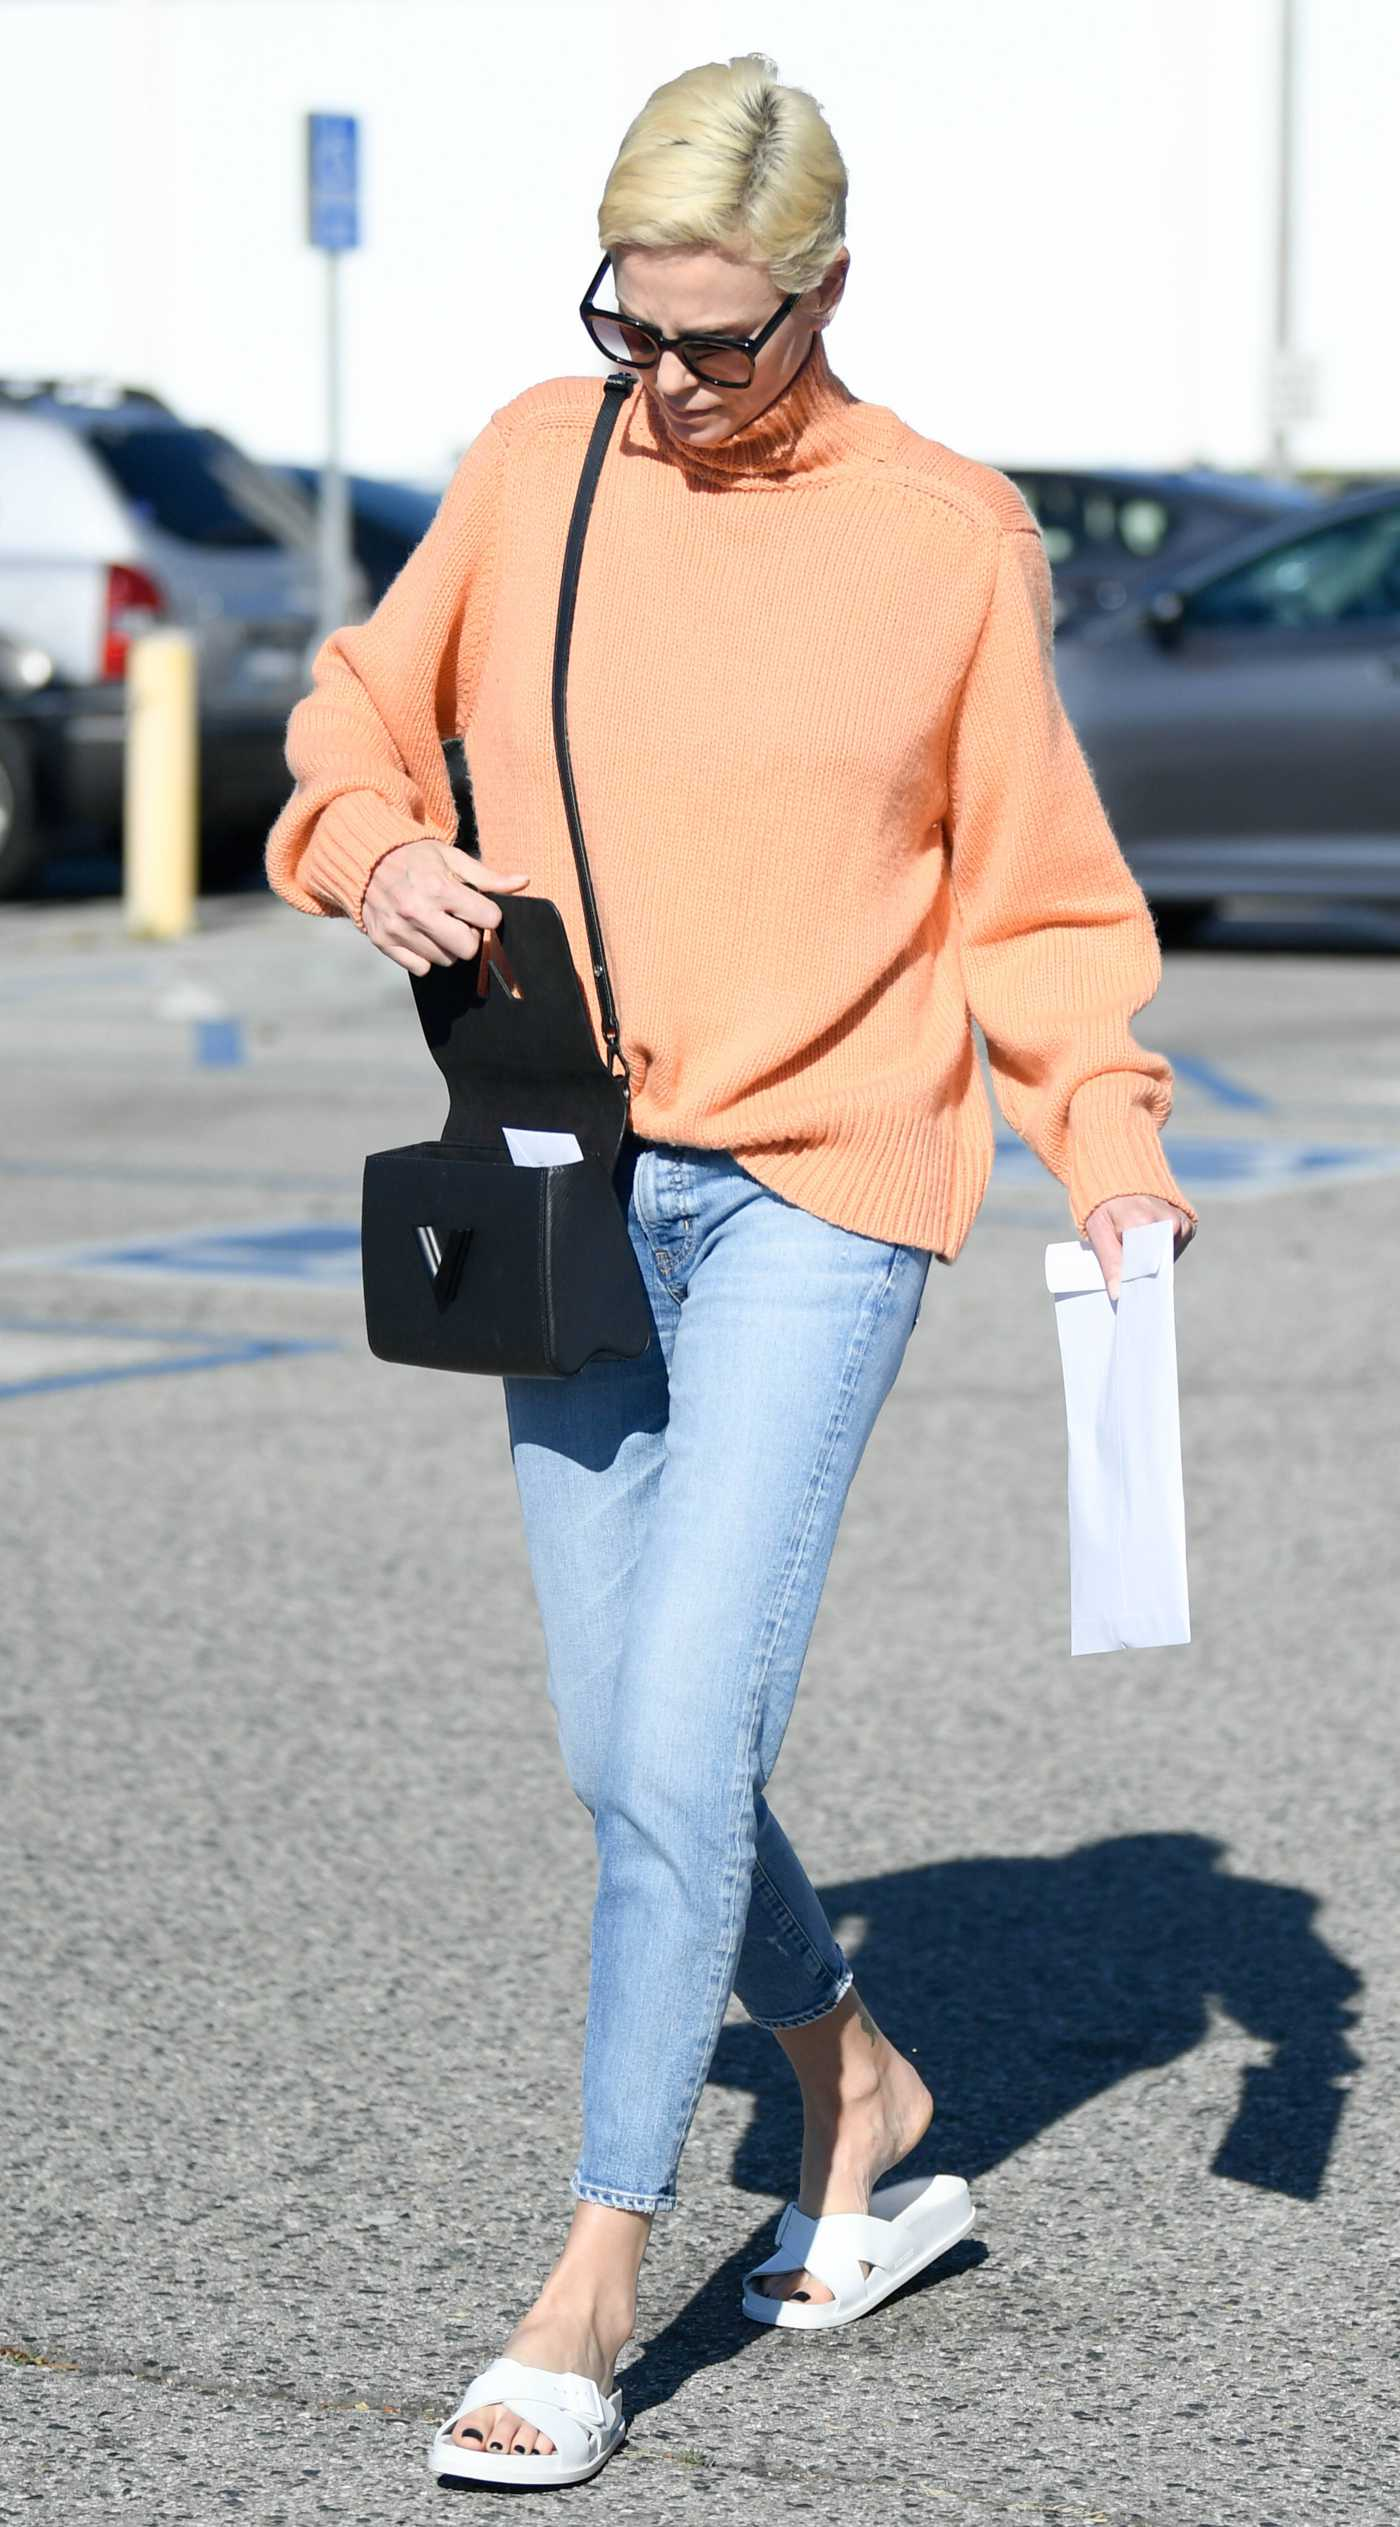 Charlize Theron in an Orange Sweater Leaves the West LA Federal Building in Los Angeles 02/25/2020